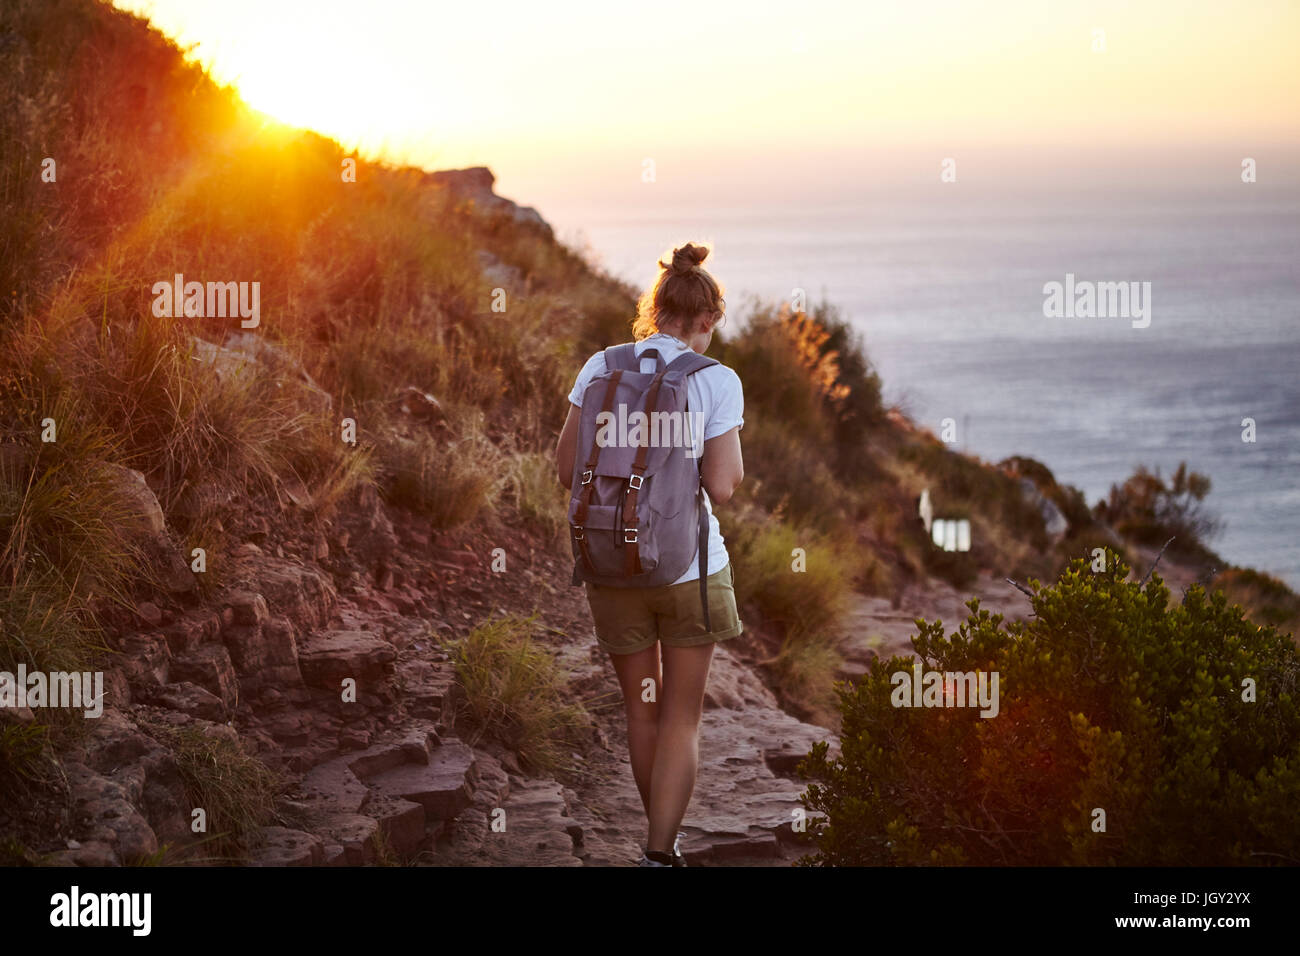 Young woman hiking, rear view, Lions head Mountain, Western Cape, Cape Town, South Africa - Stock Image